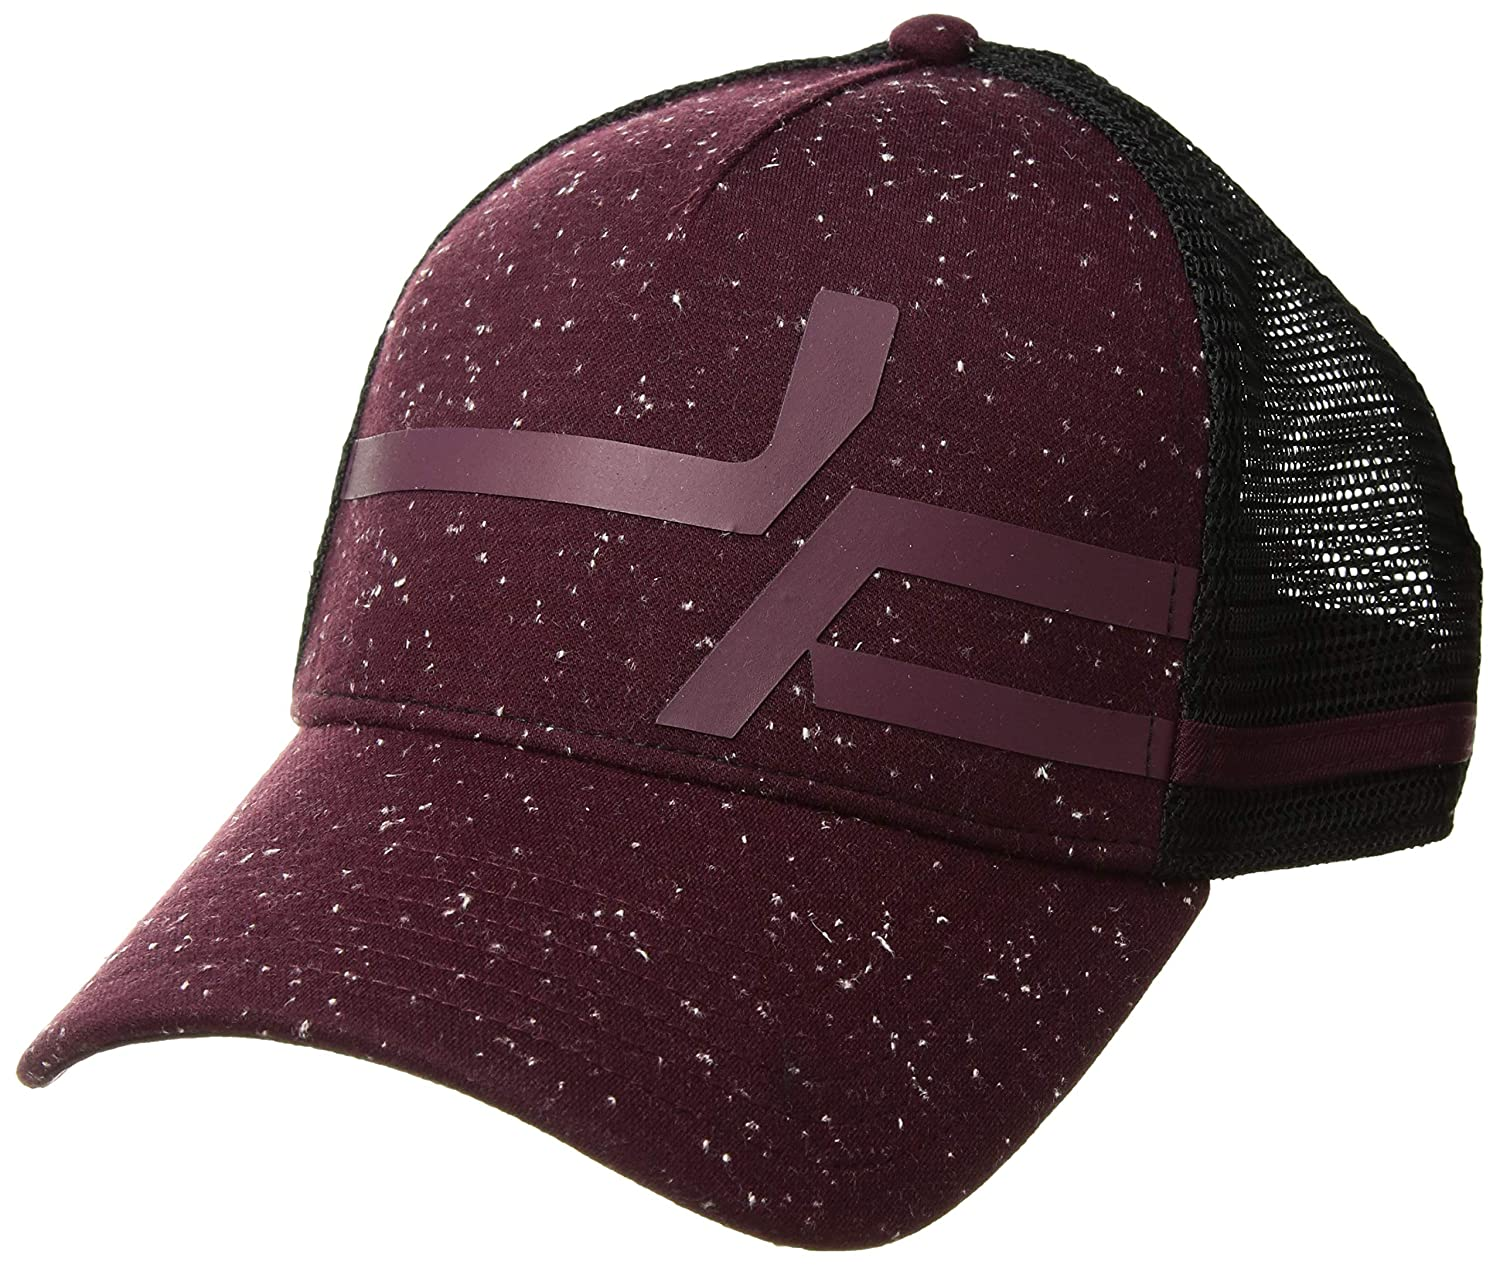 the latest 1ac85 92b52 Amazon.com  Under Armour Men s Macro Pro Fit Trucker, Black (001) Black,  One Size  Clothing